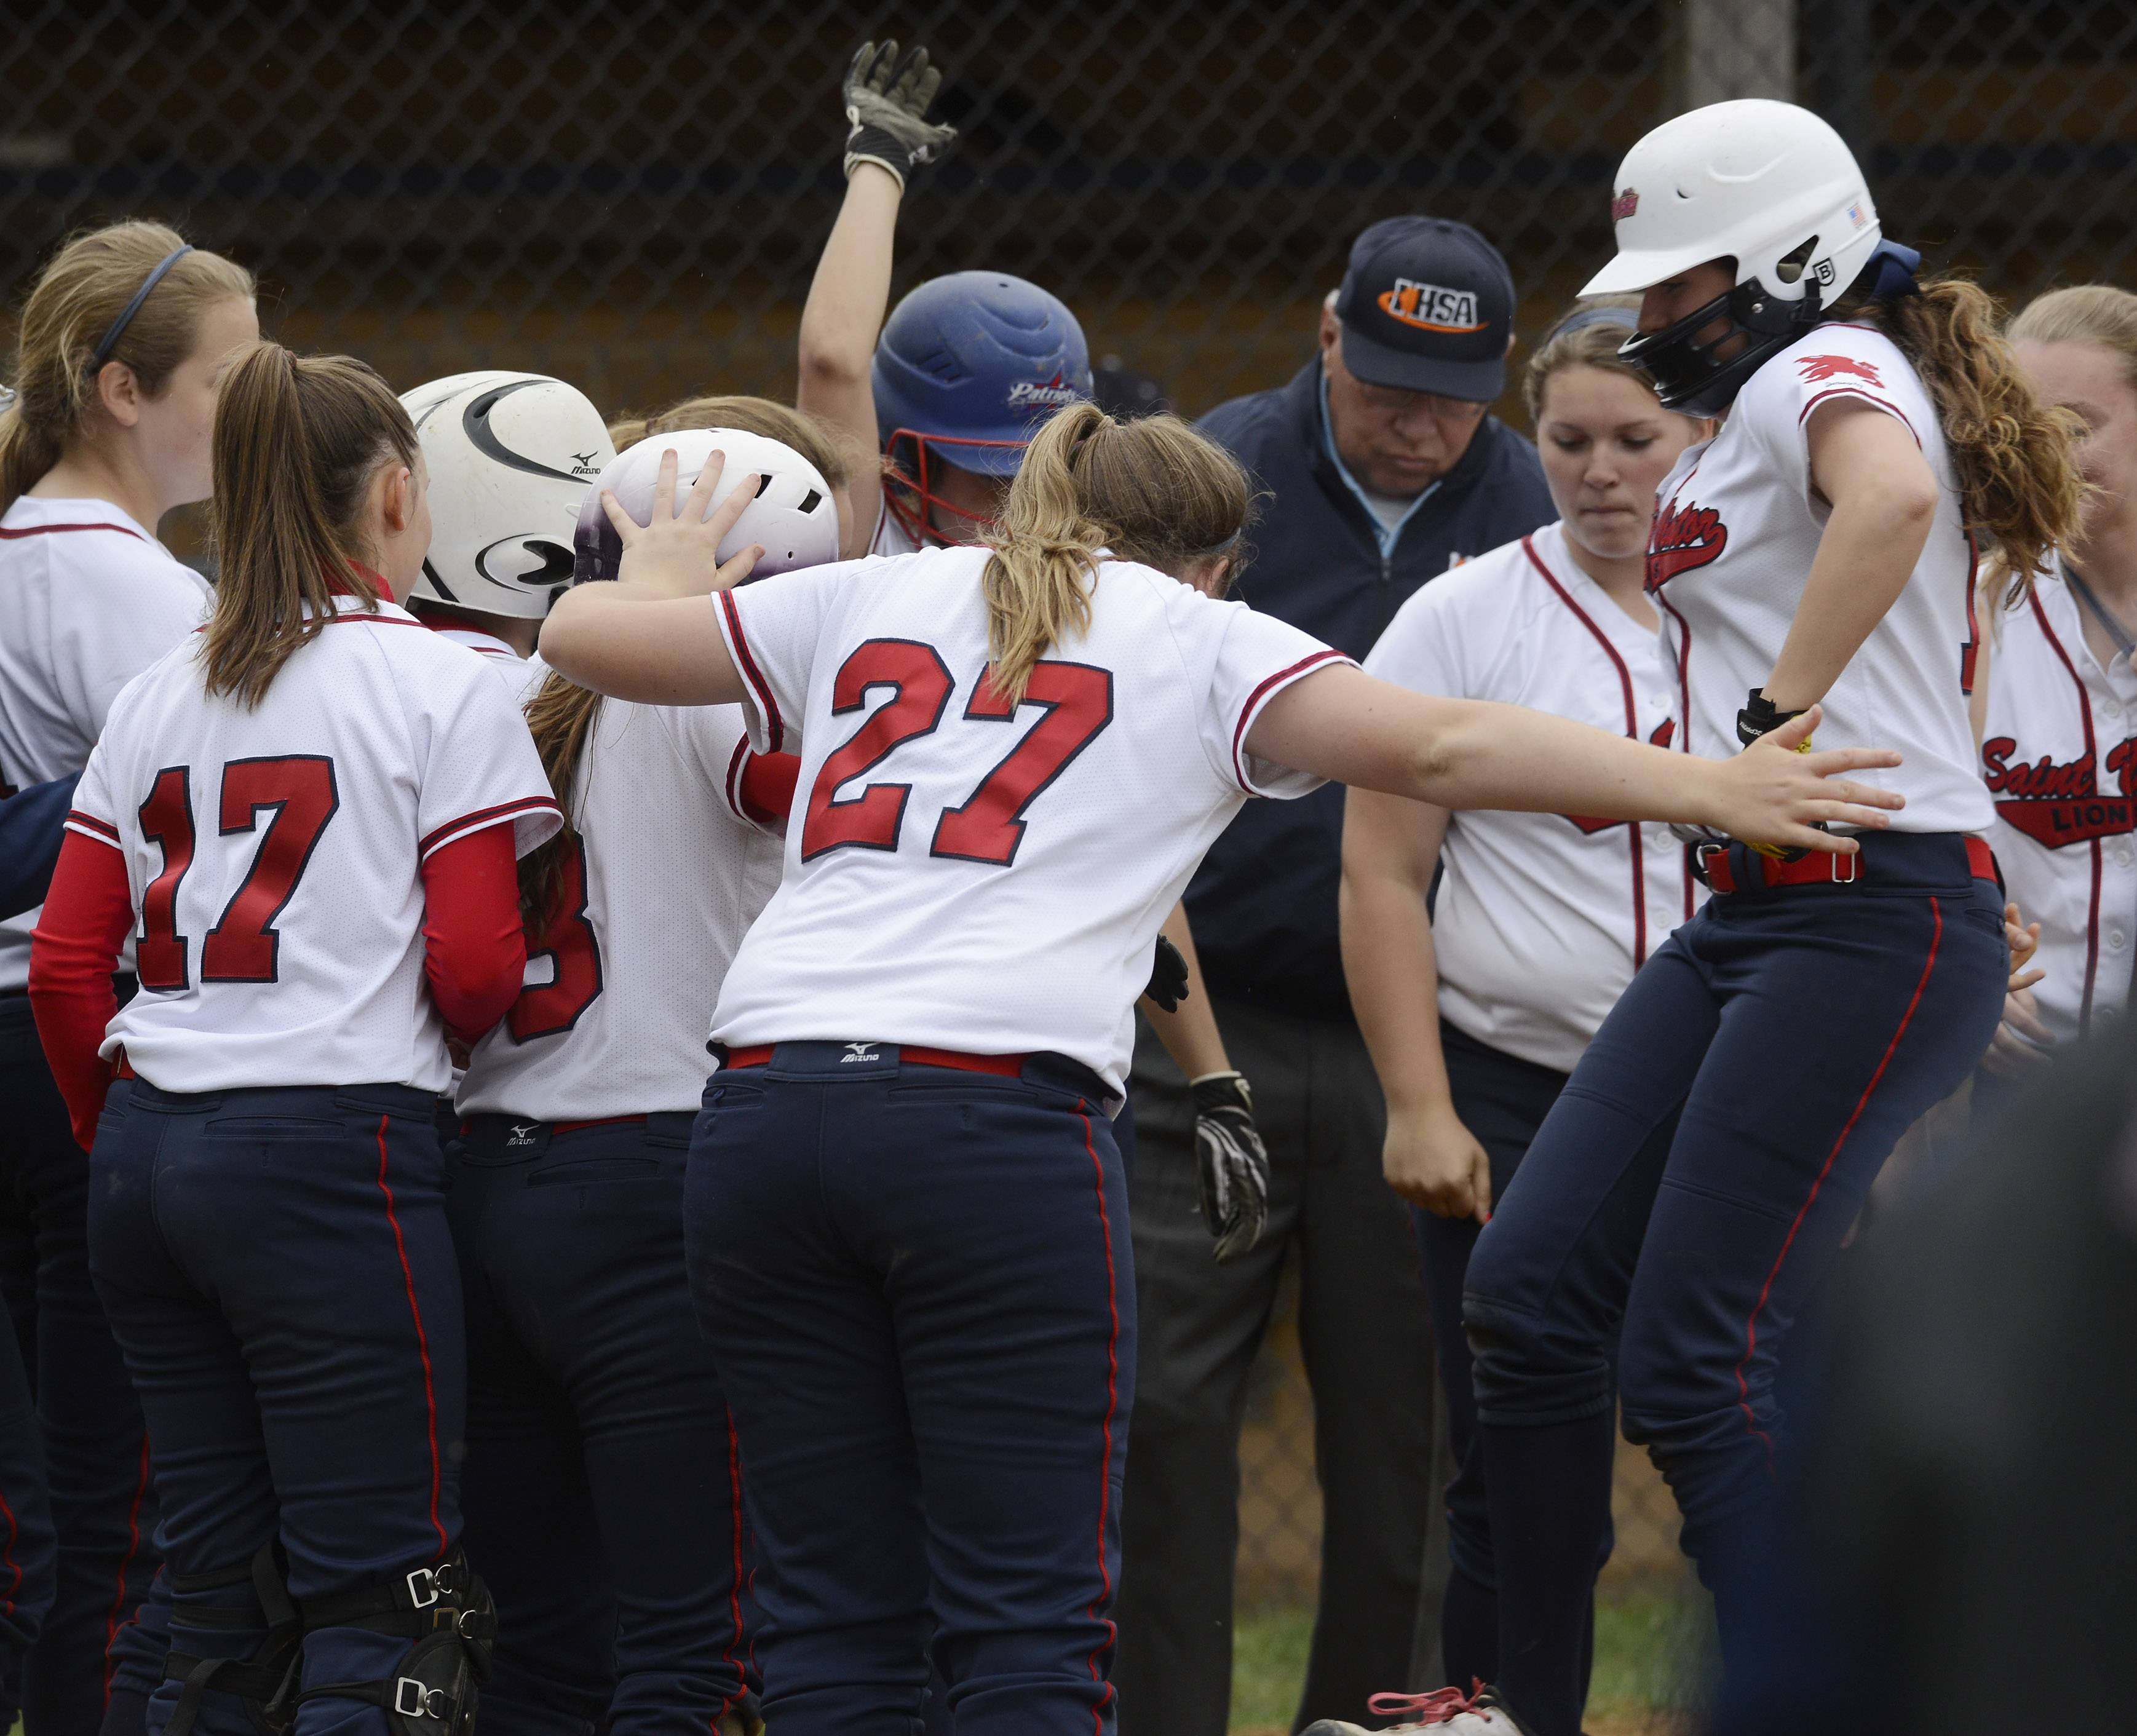 St. Viator's Samantha Hogan is greeted at the plate by her teammates after hitting a 3-run home run against Rolling Meadows during Tuesday's game.